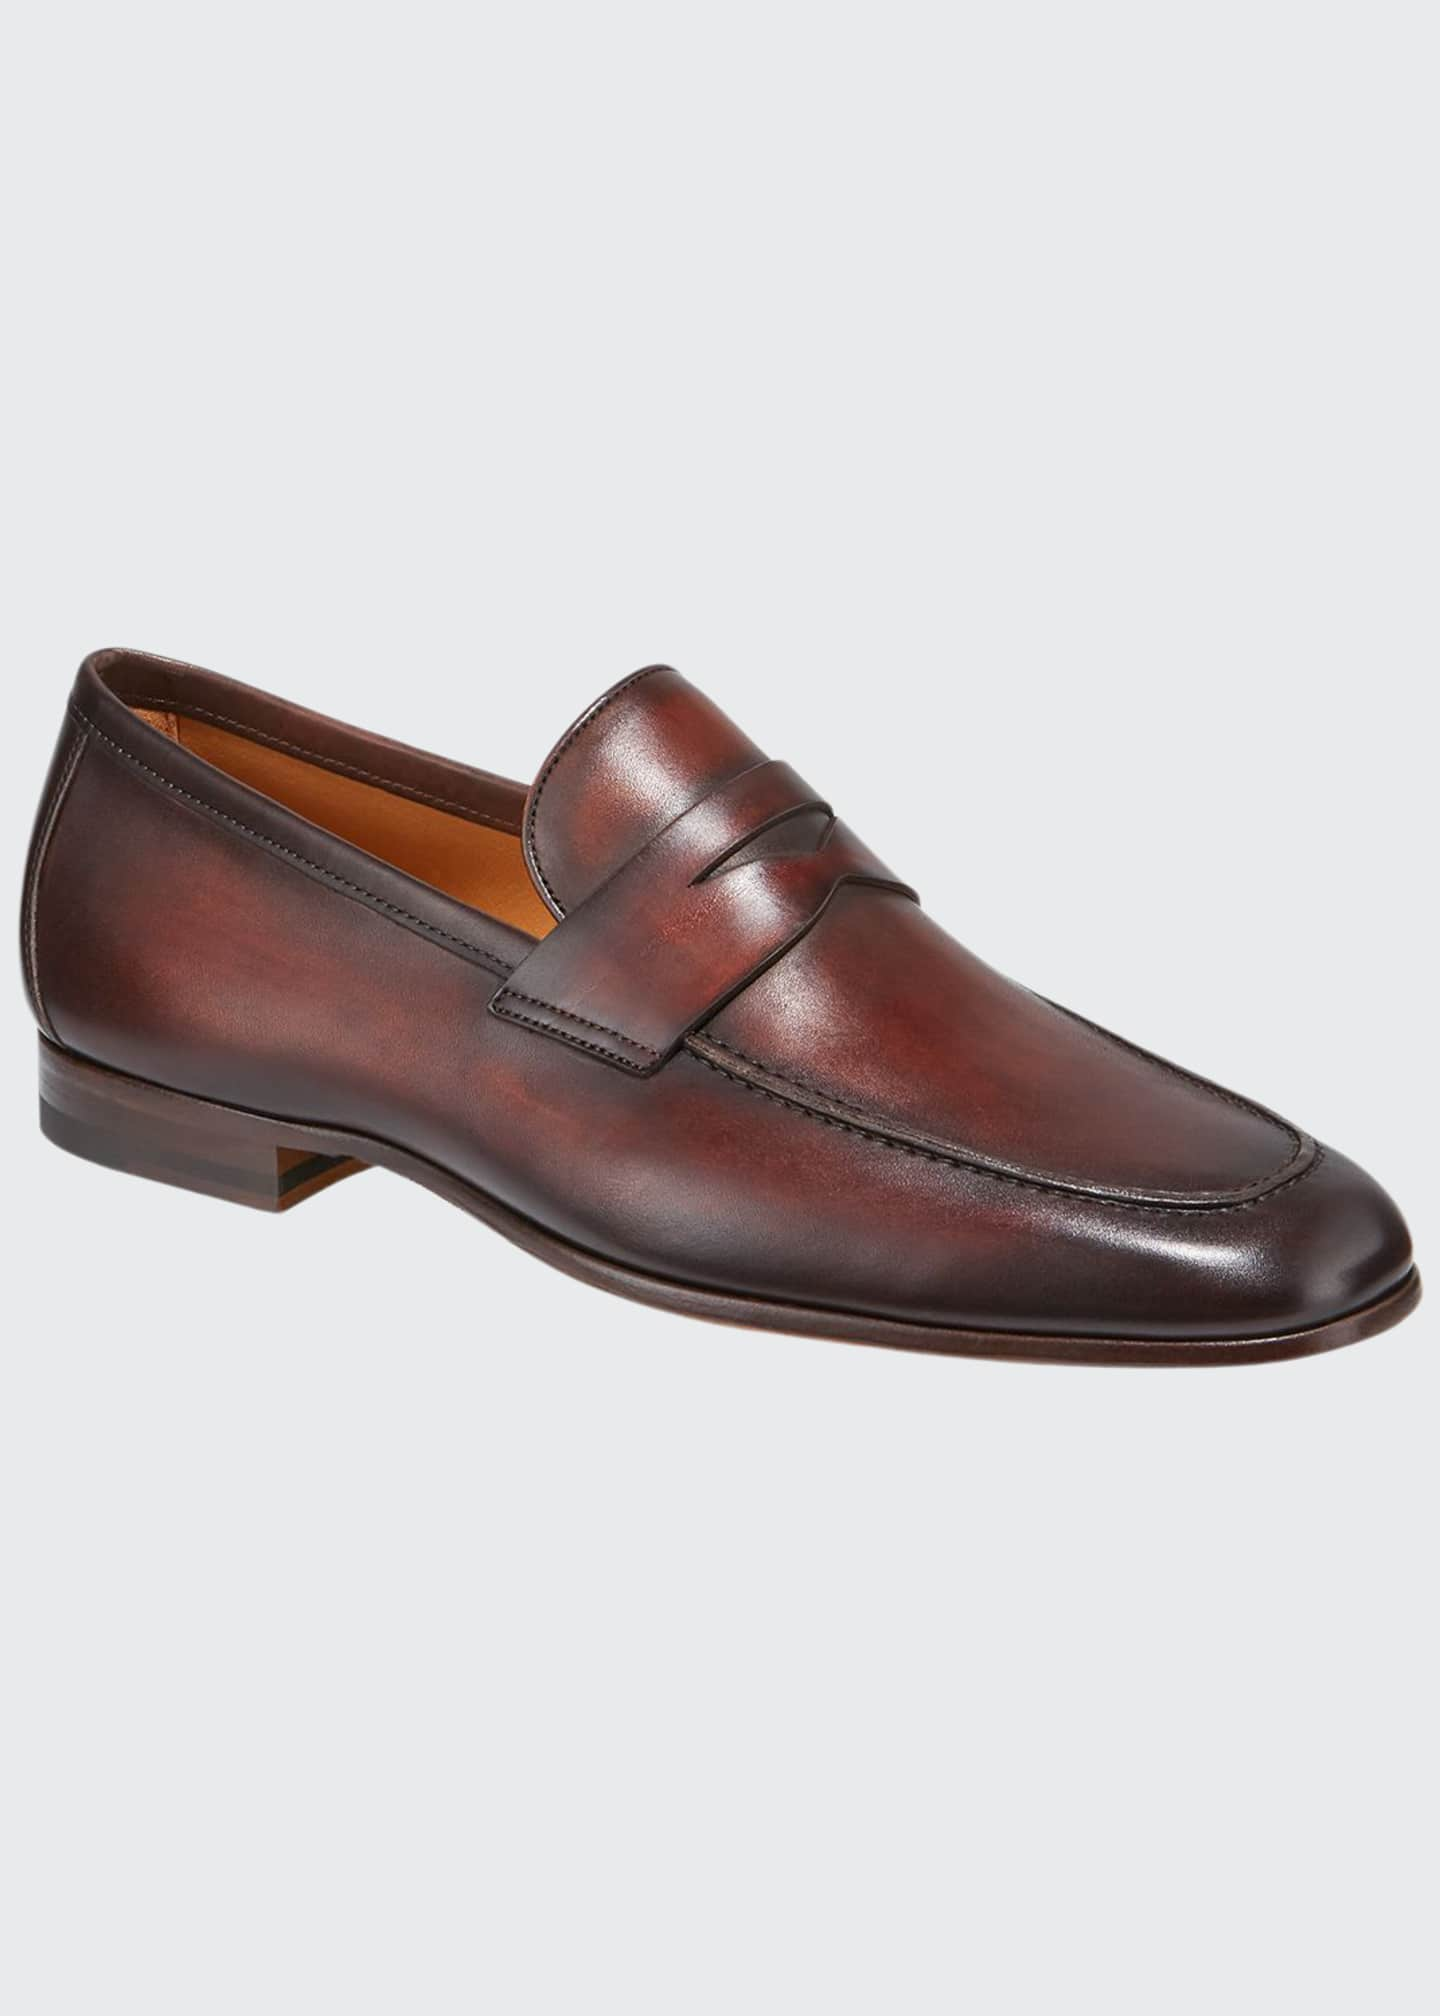 Magnanni for Neiman Marcus Men's Boltiarcade Caoba Leather